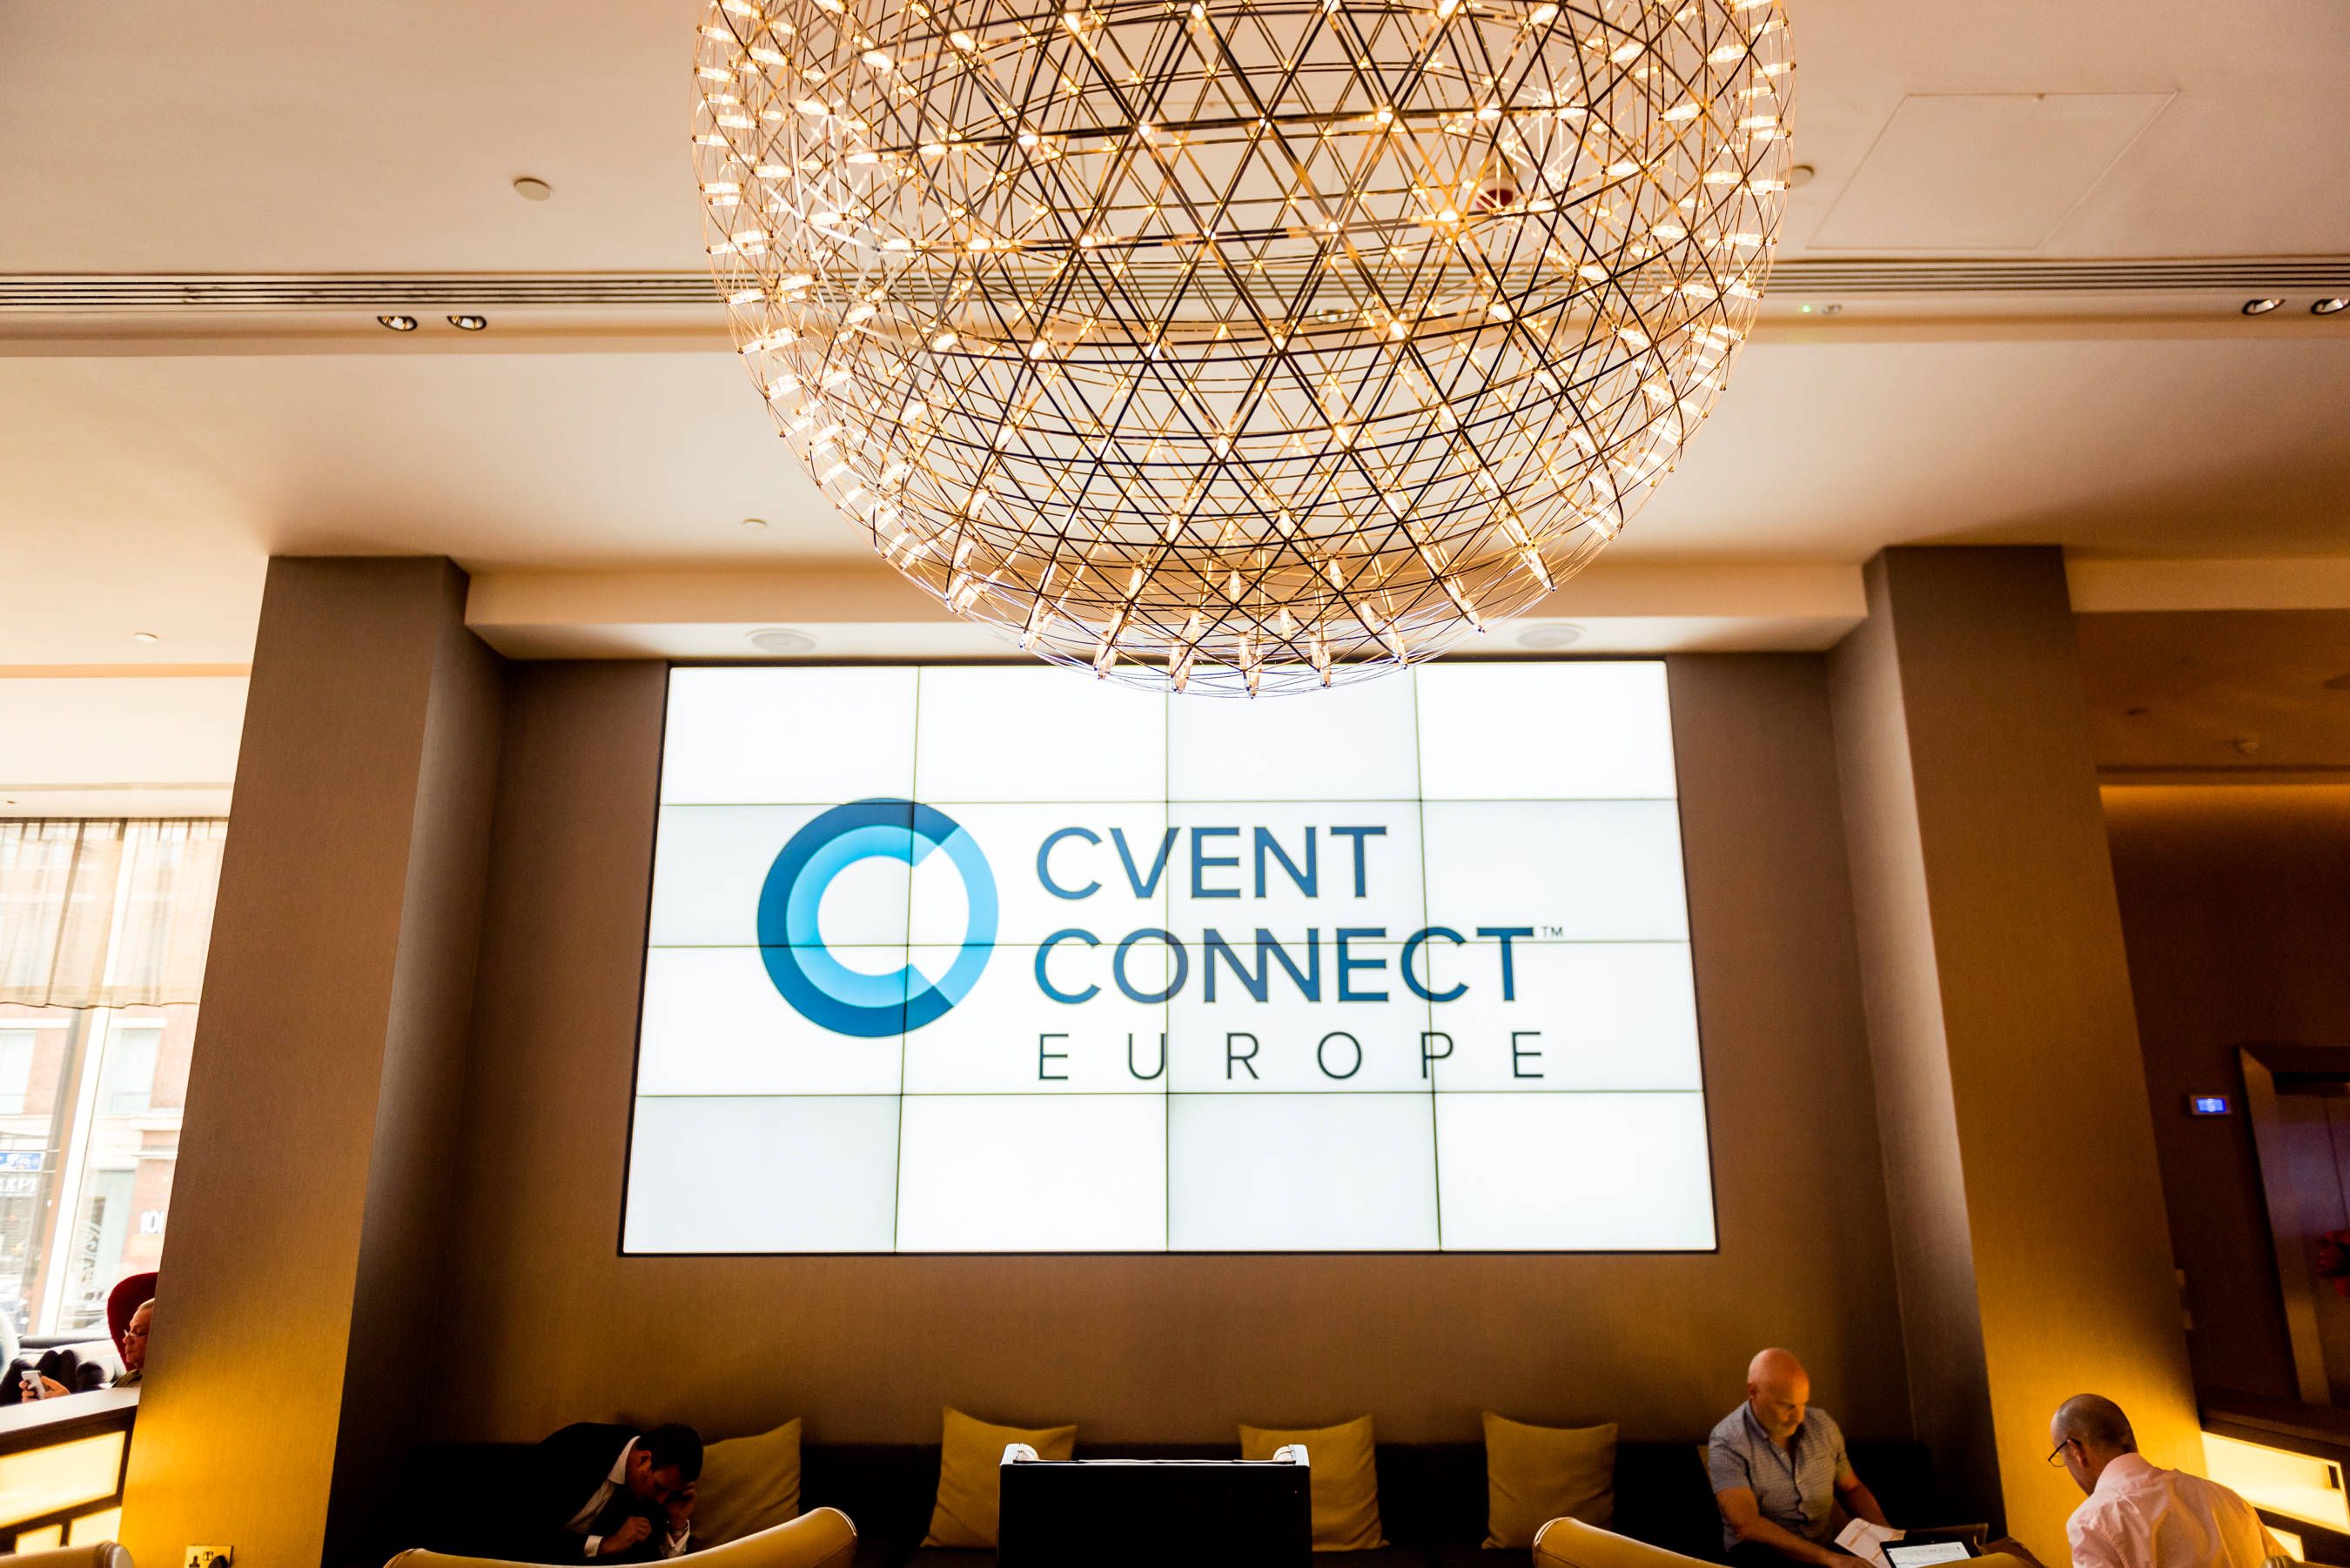 Cvent CONNECT Europe 2017